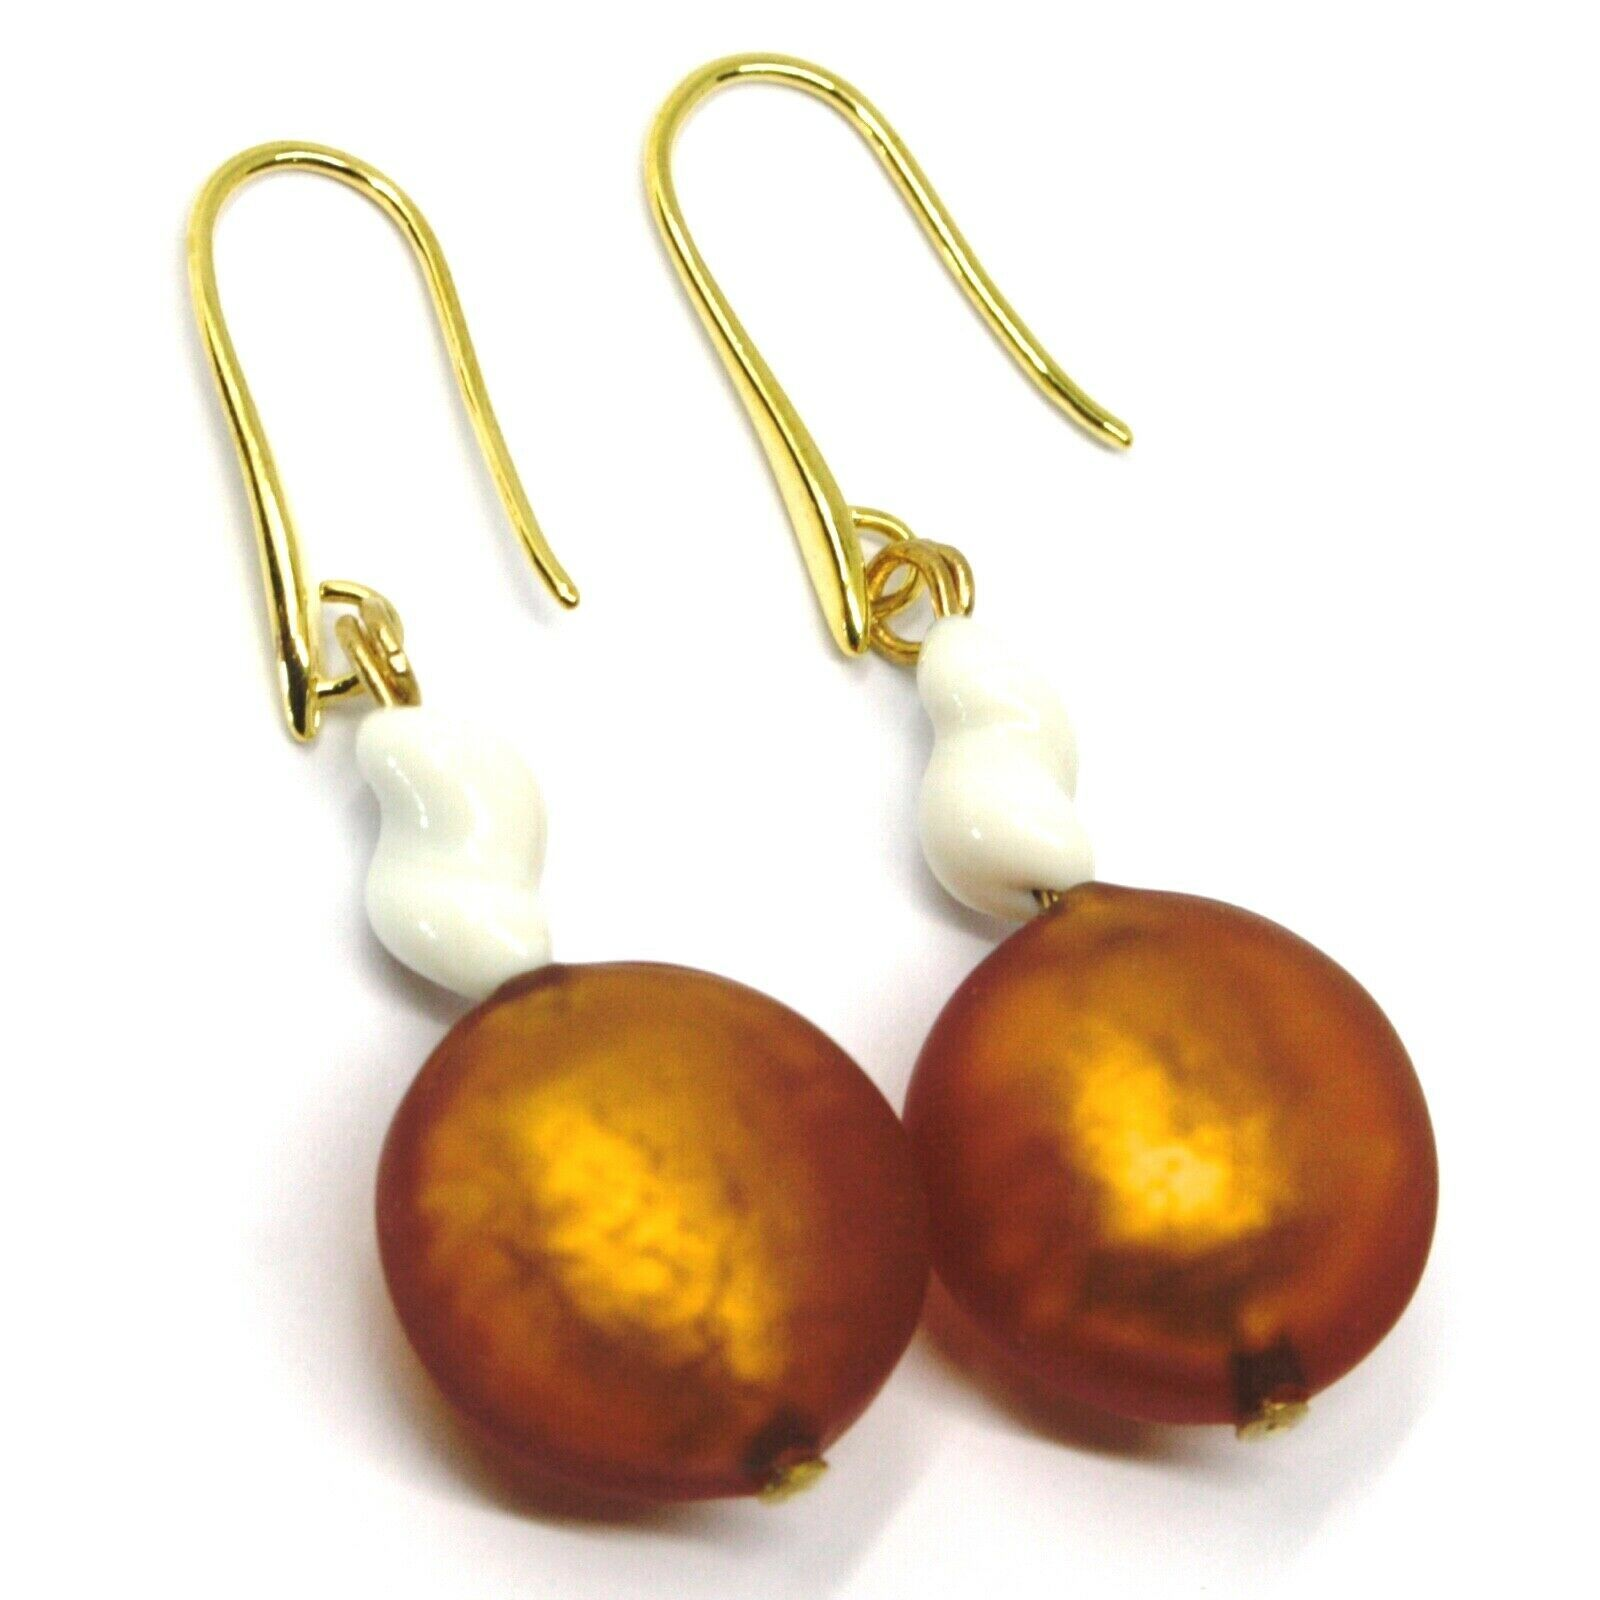 PENDANT EARRINGS ORANGE WHITE DISC MURANO GLASS GOLD LEAF SPIRAL MADE IN ITALY